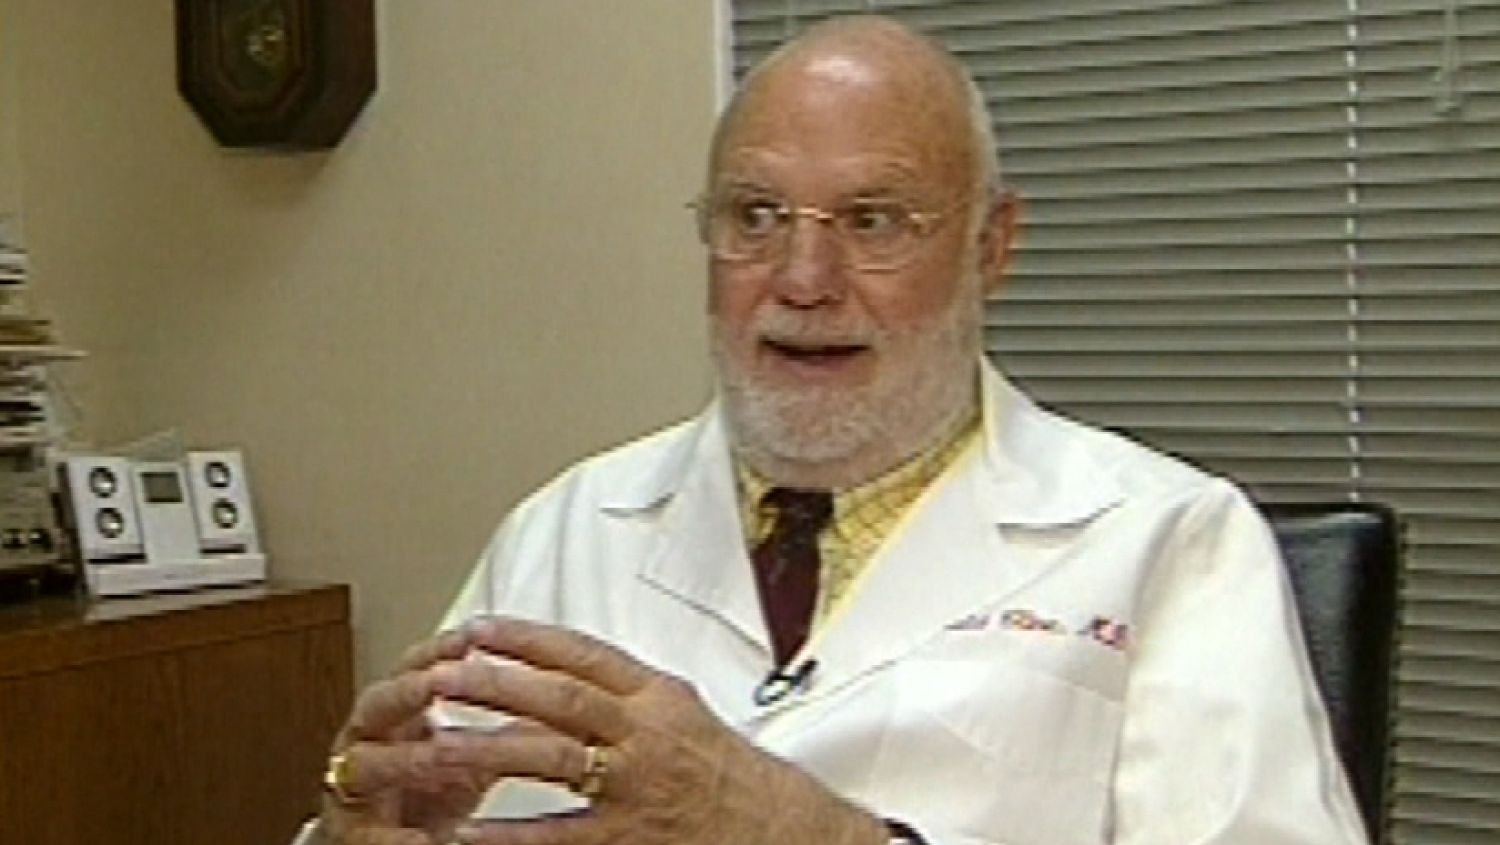 Fertility doctor impregnated several patients